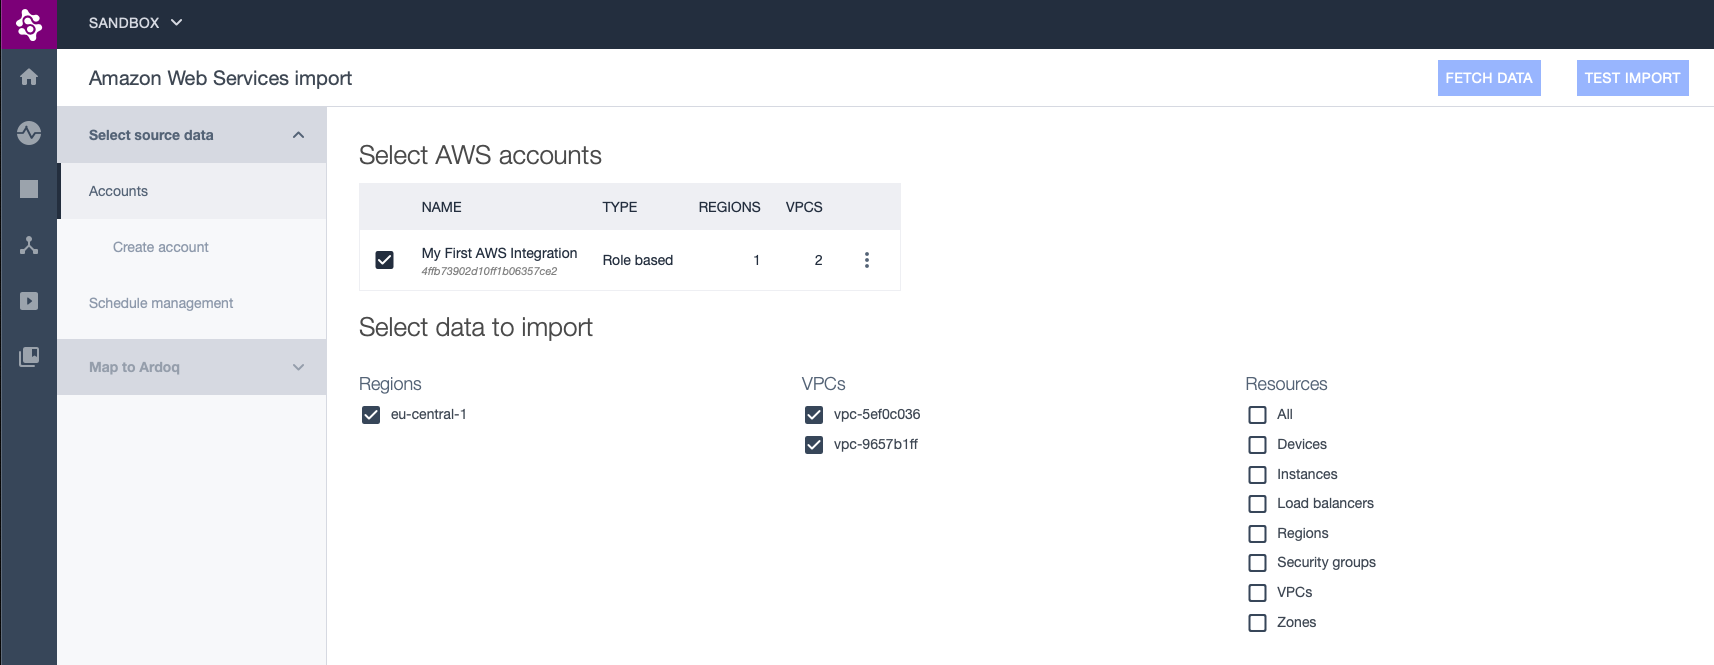 AWS source selection page showing one AWS account and available choices for regions, VPCs and resources